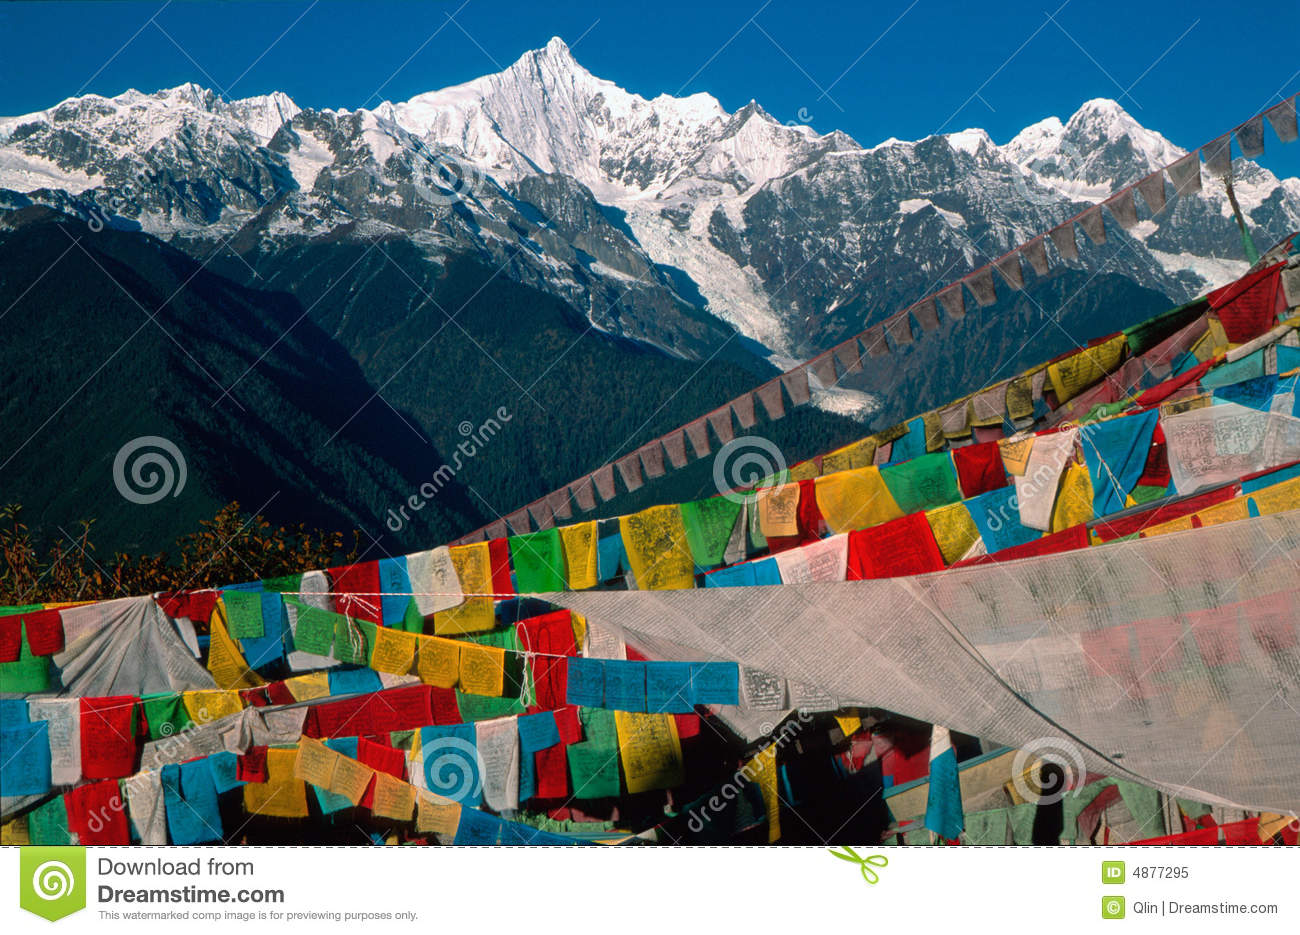 Prayer Flags and Kawagebo